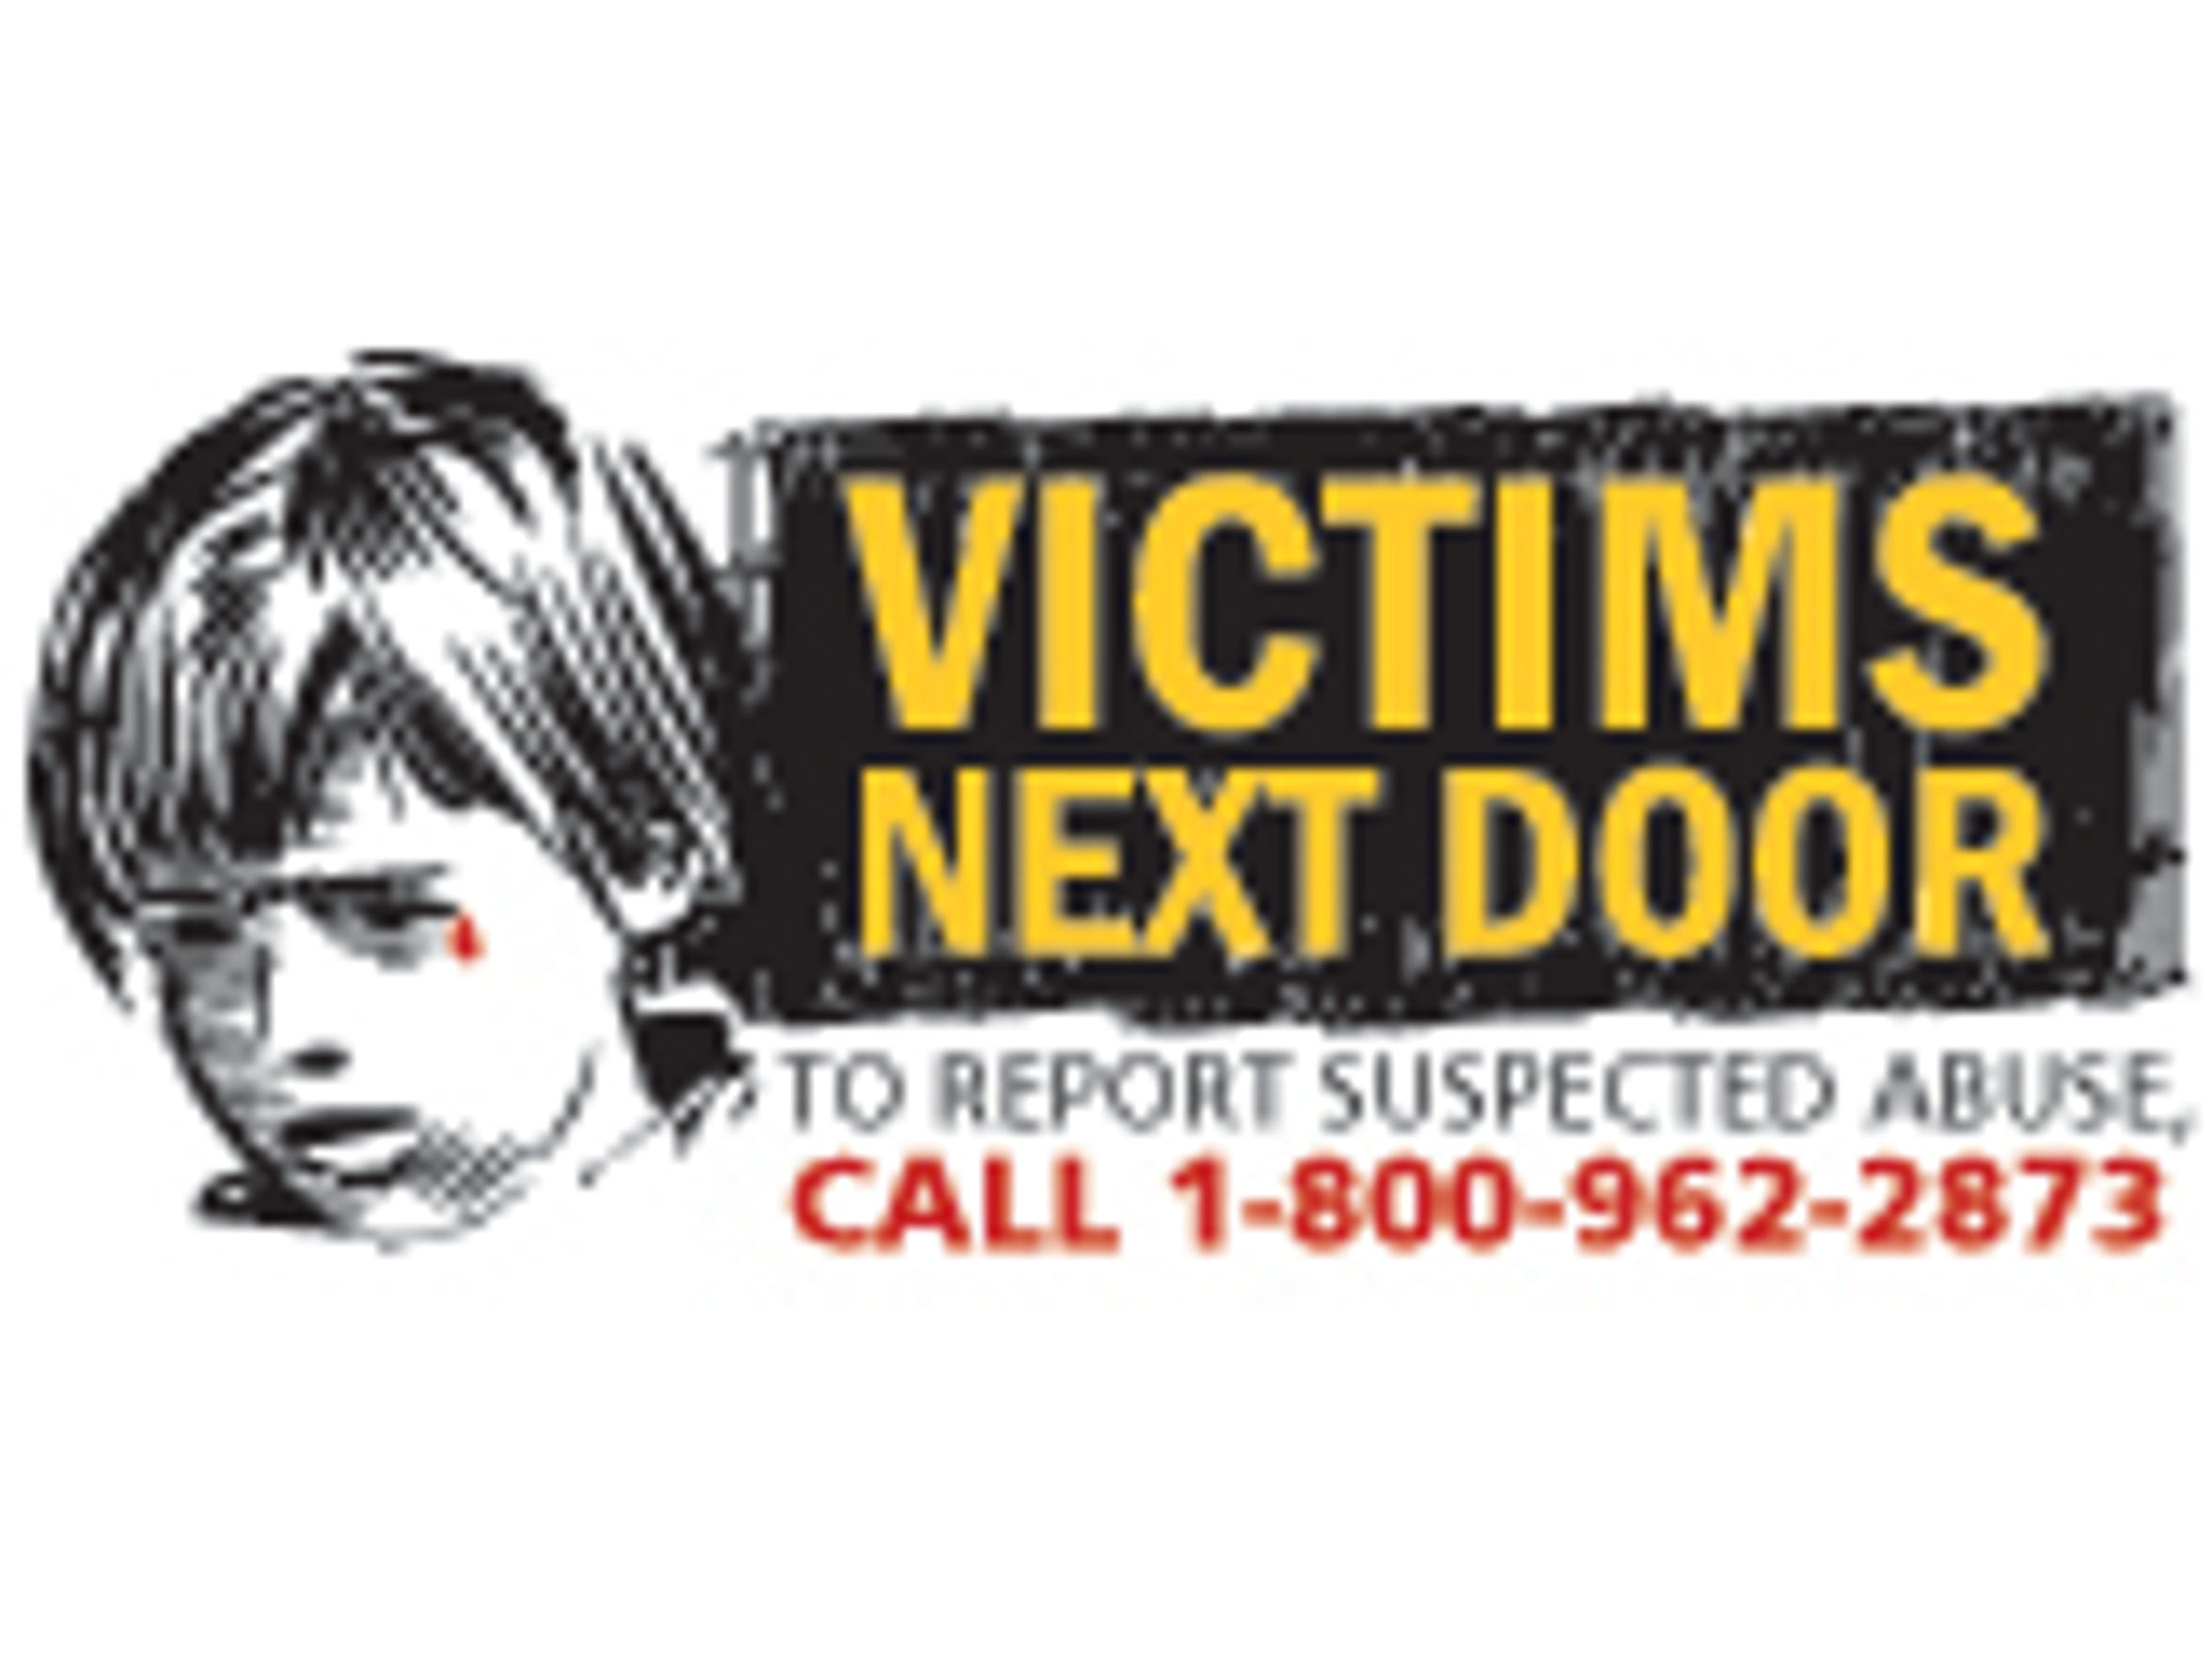 To report suspected abuse, call 1-800-962-2873.